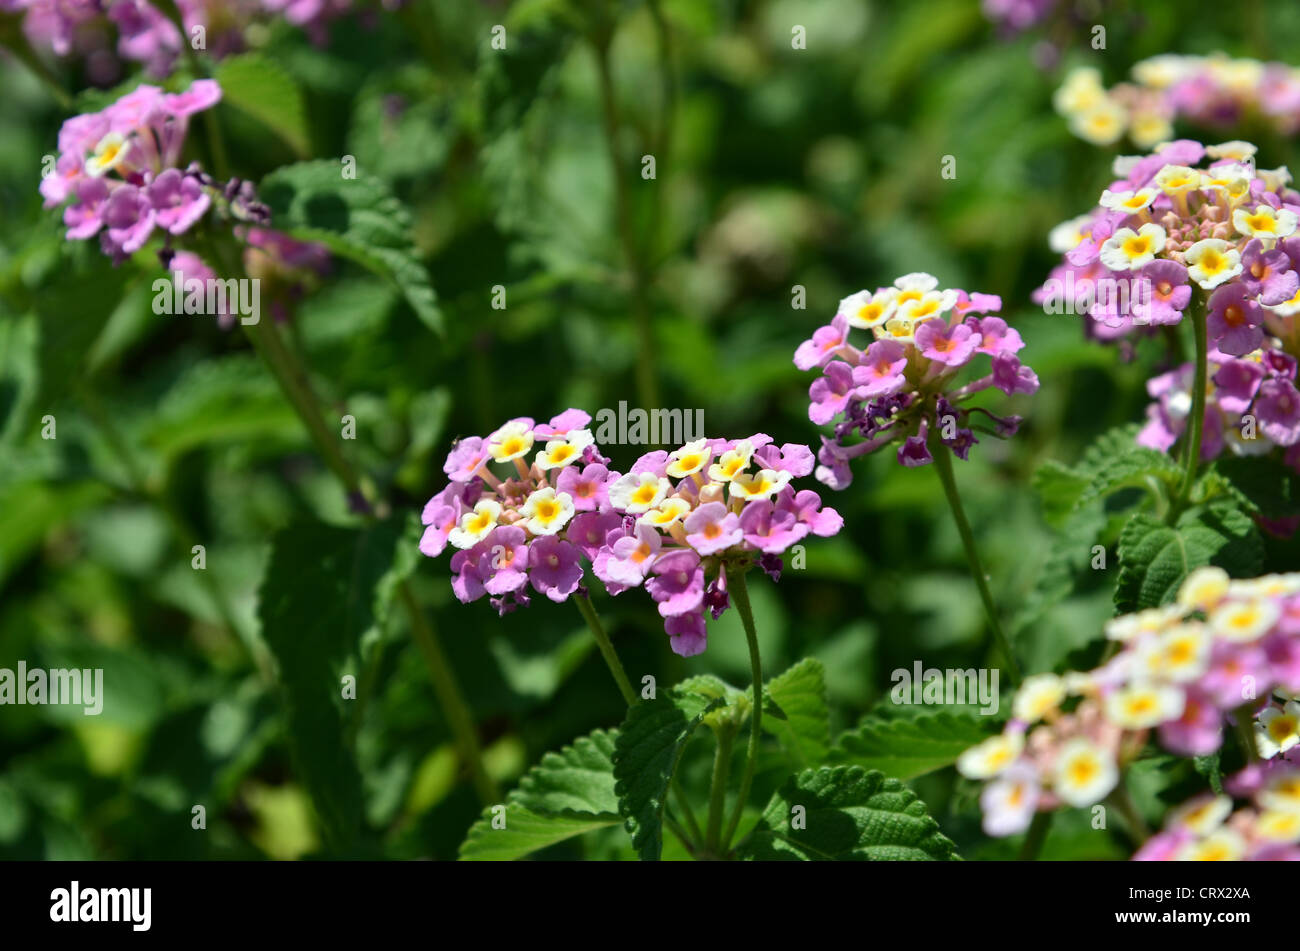 Verbena Lantana flowers in full bloom in the summer sunshine - shallow depth of field, focus in the centre of the - Stock Image